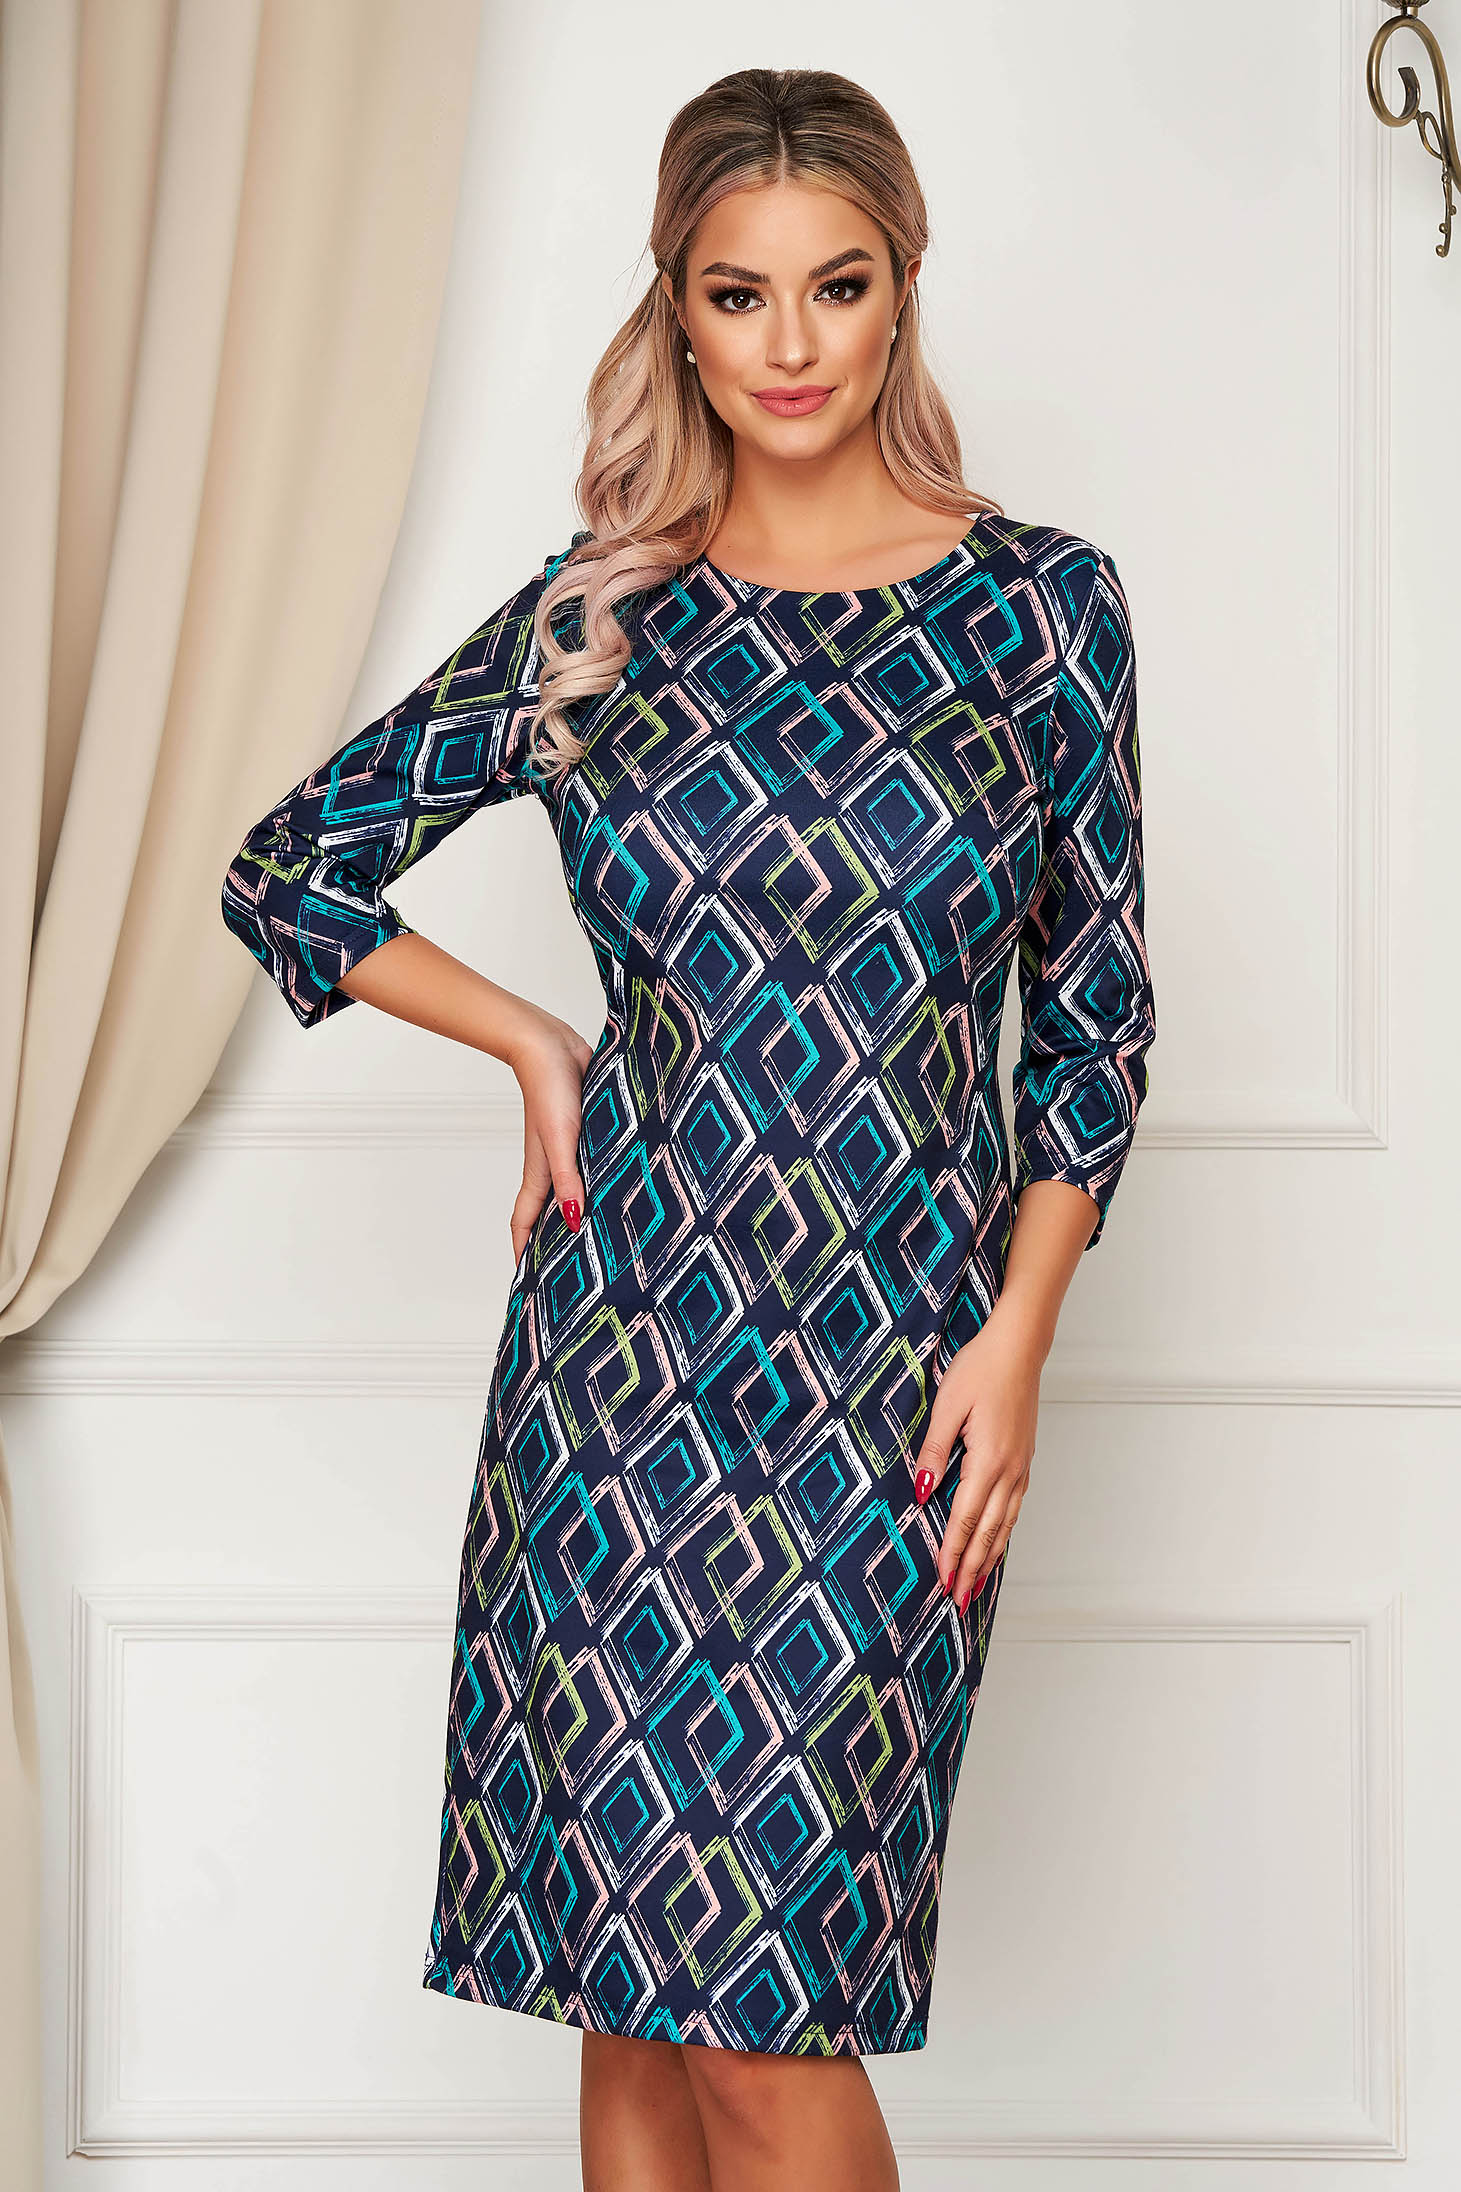 StarShinerS darkblue dress office midi 3/4 sleeve with geometrical print jersey straight